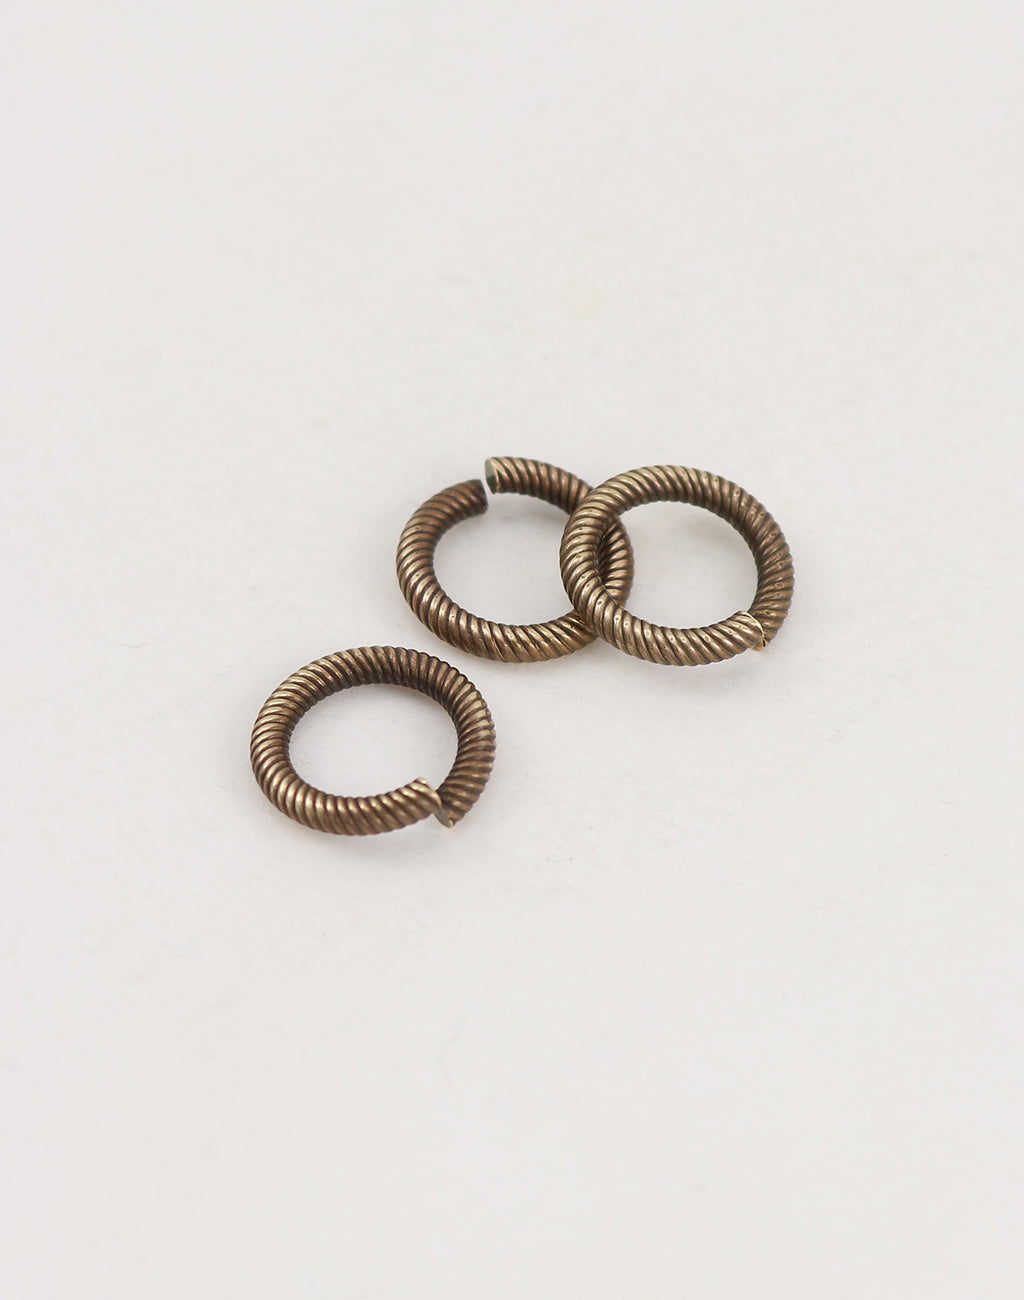 Coiled Cable Jump Ring, 14.5mm, 11ga, (3pcs)